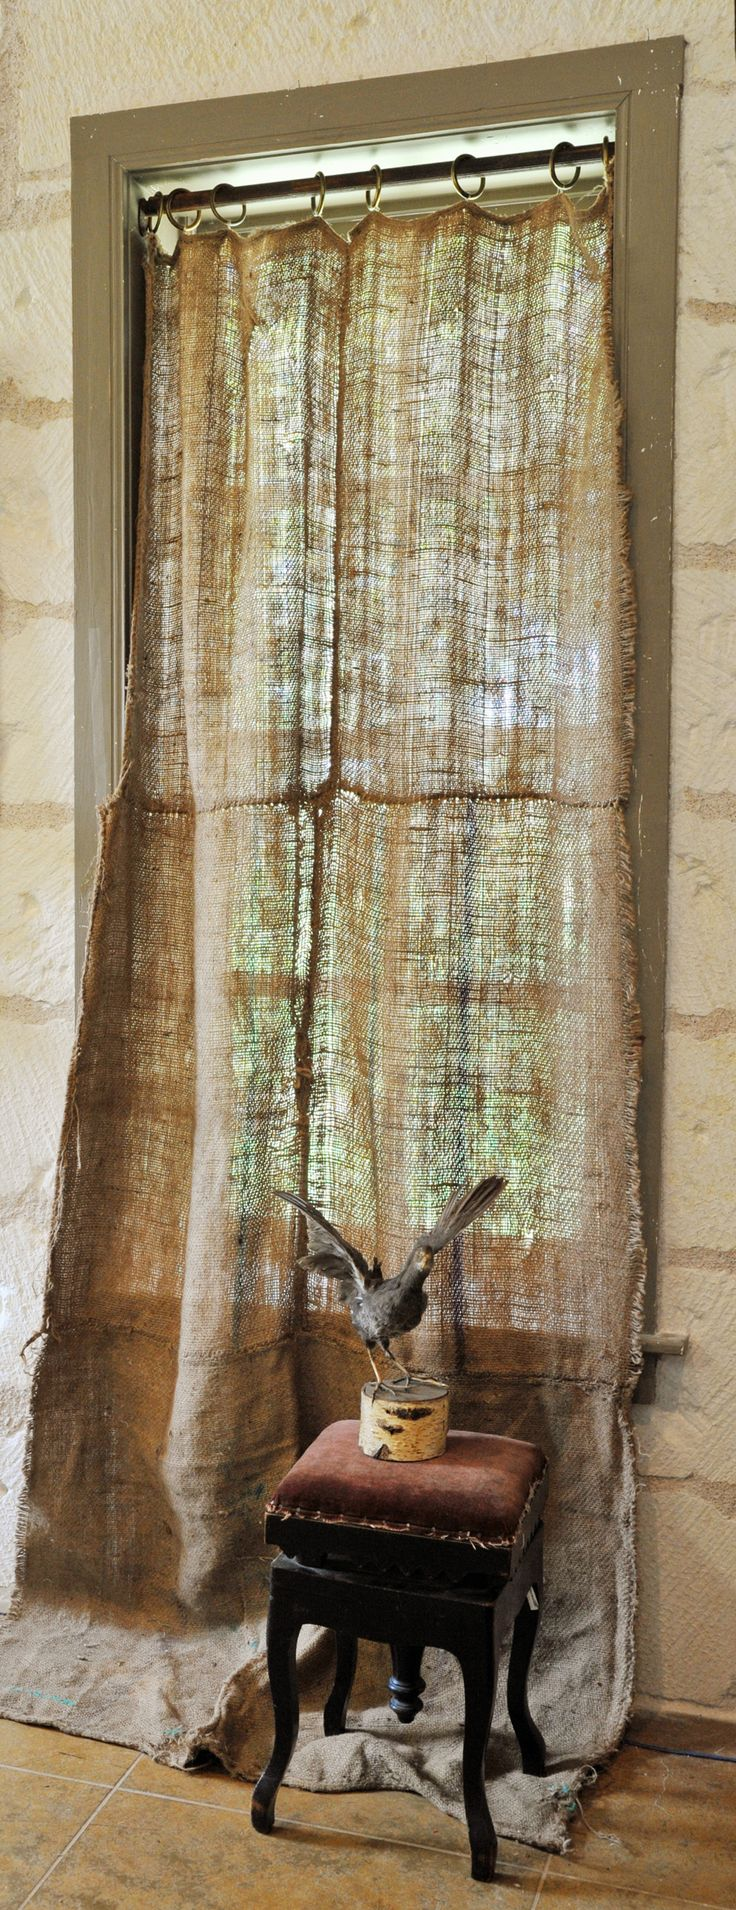 Burlap curtains... i know not everyone would go for this but i LOVE it. I even love the distressed trim around the window.